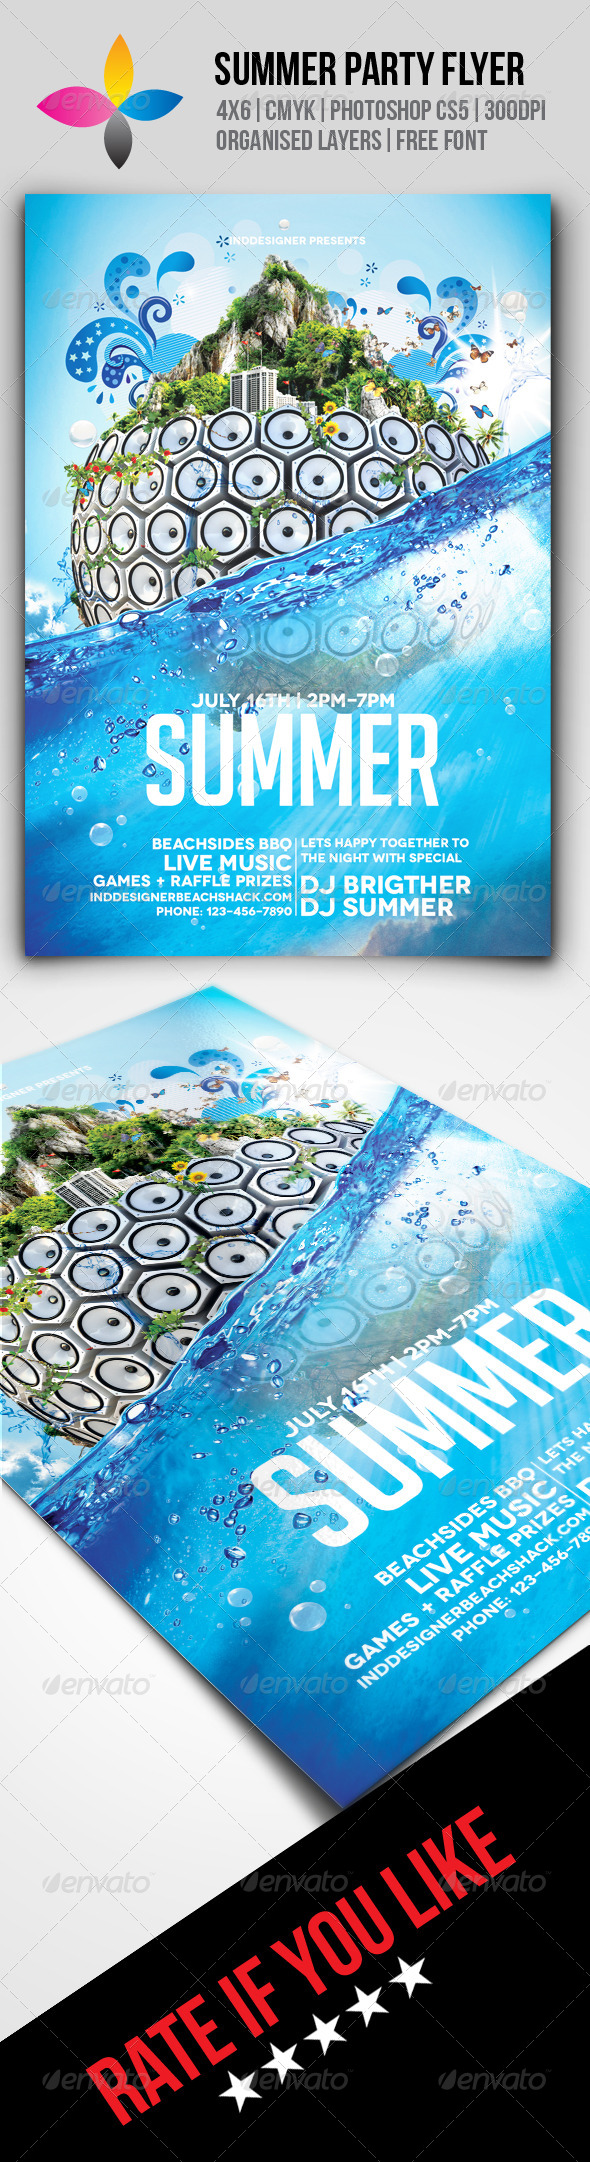 GraphicRiver Summer Party Flyer 8508868